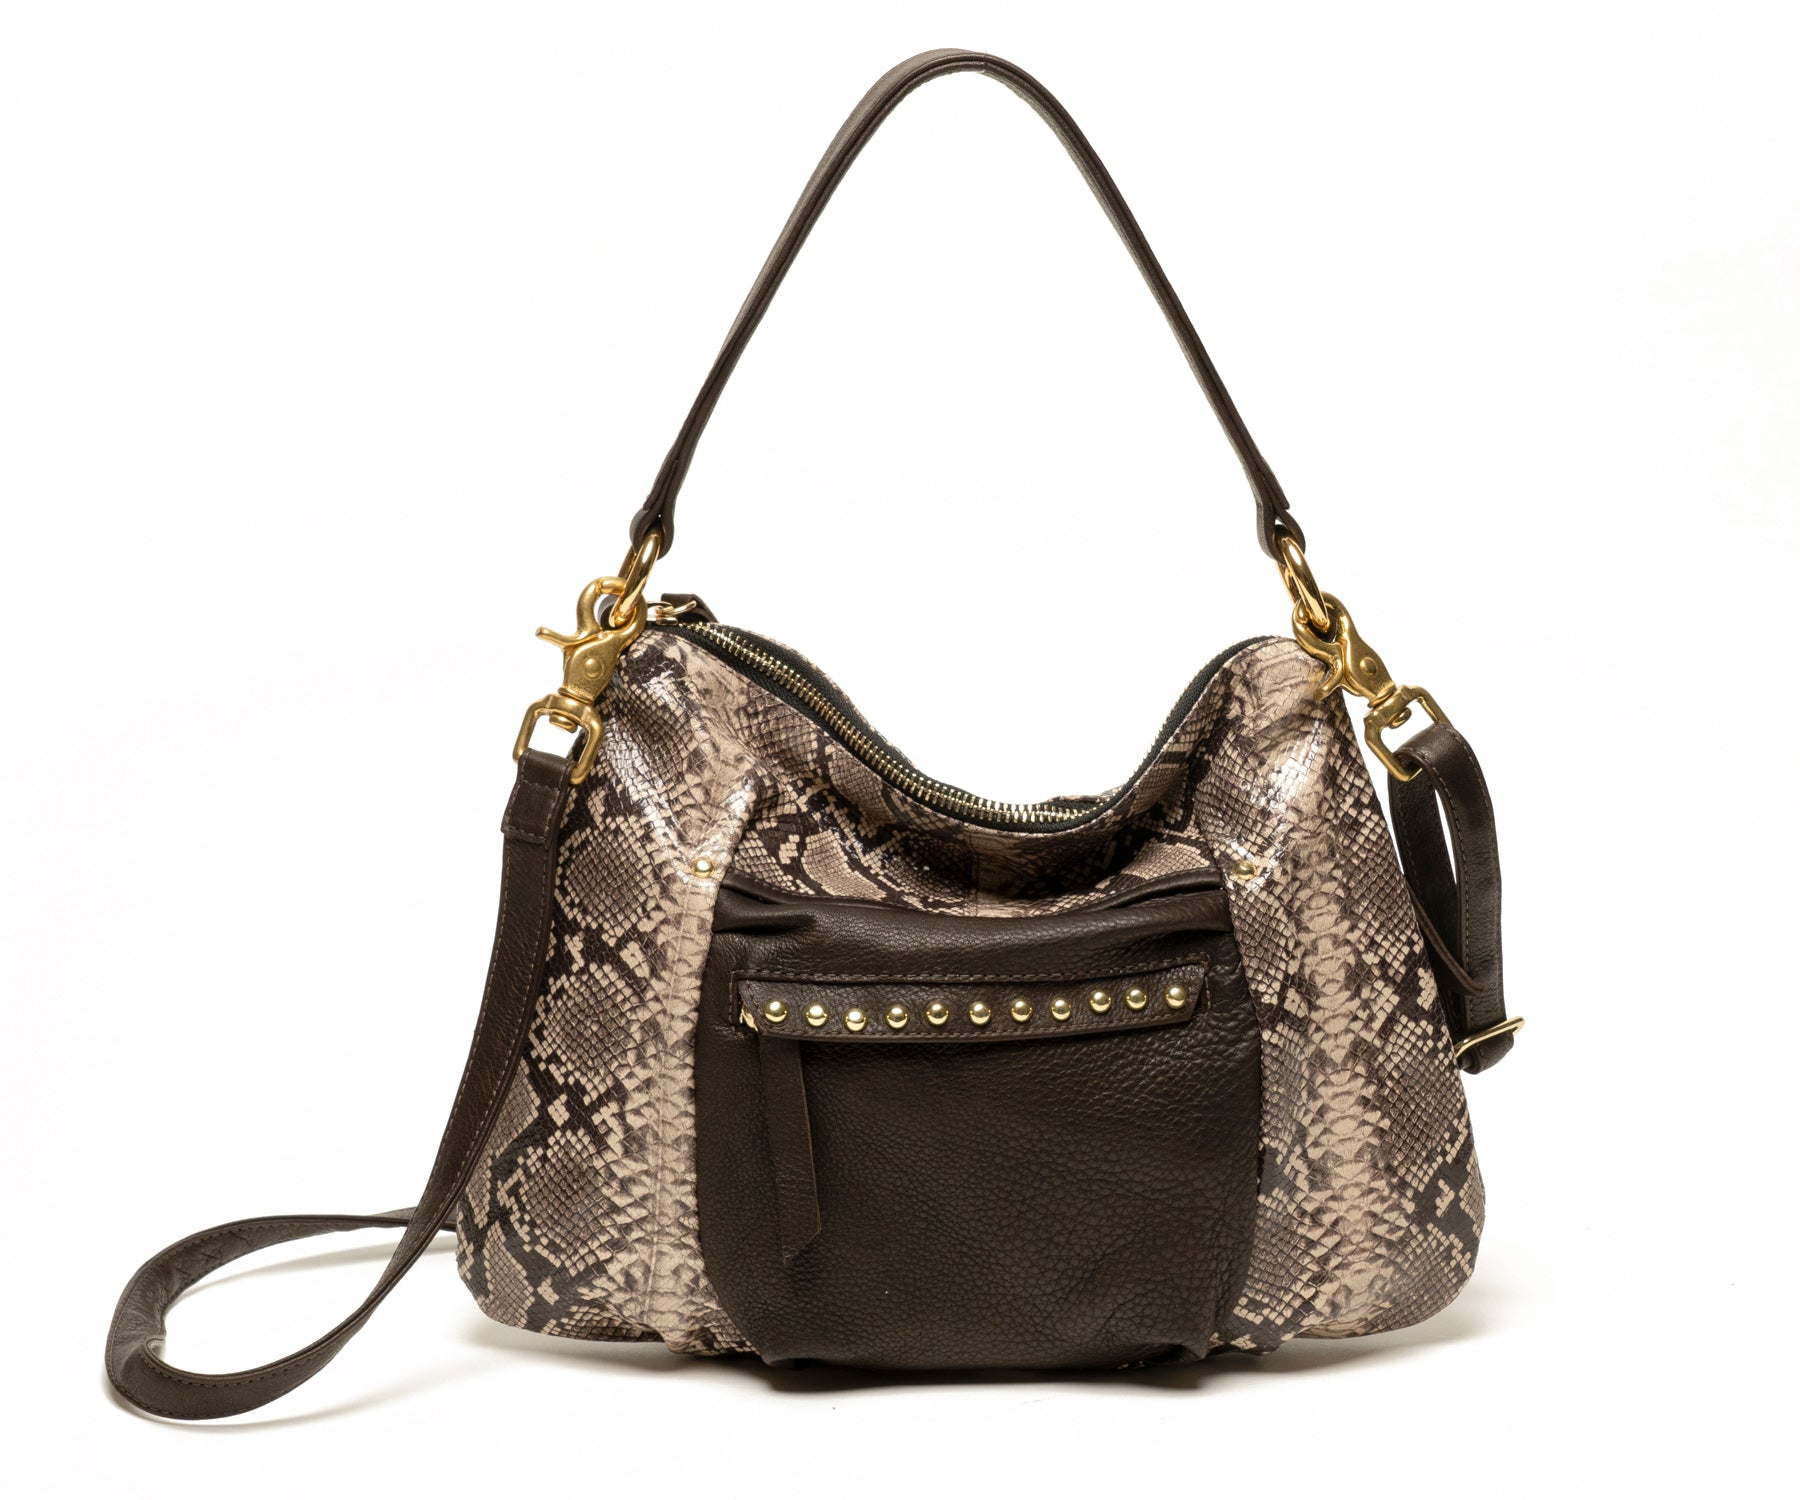 MINI JOYCE - Brown Snake Print